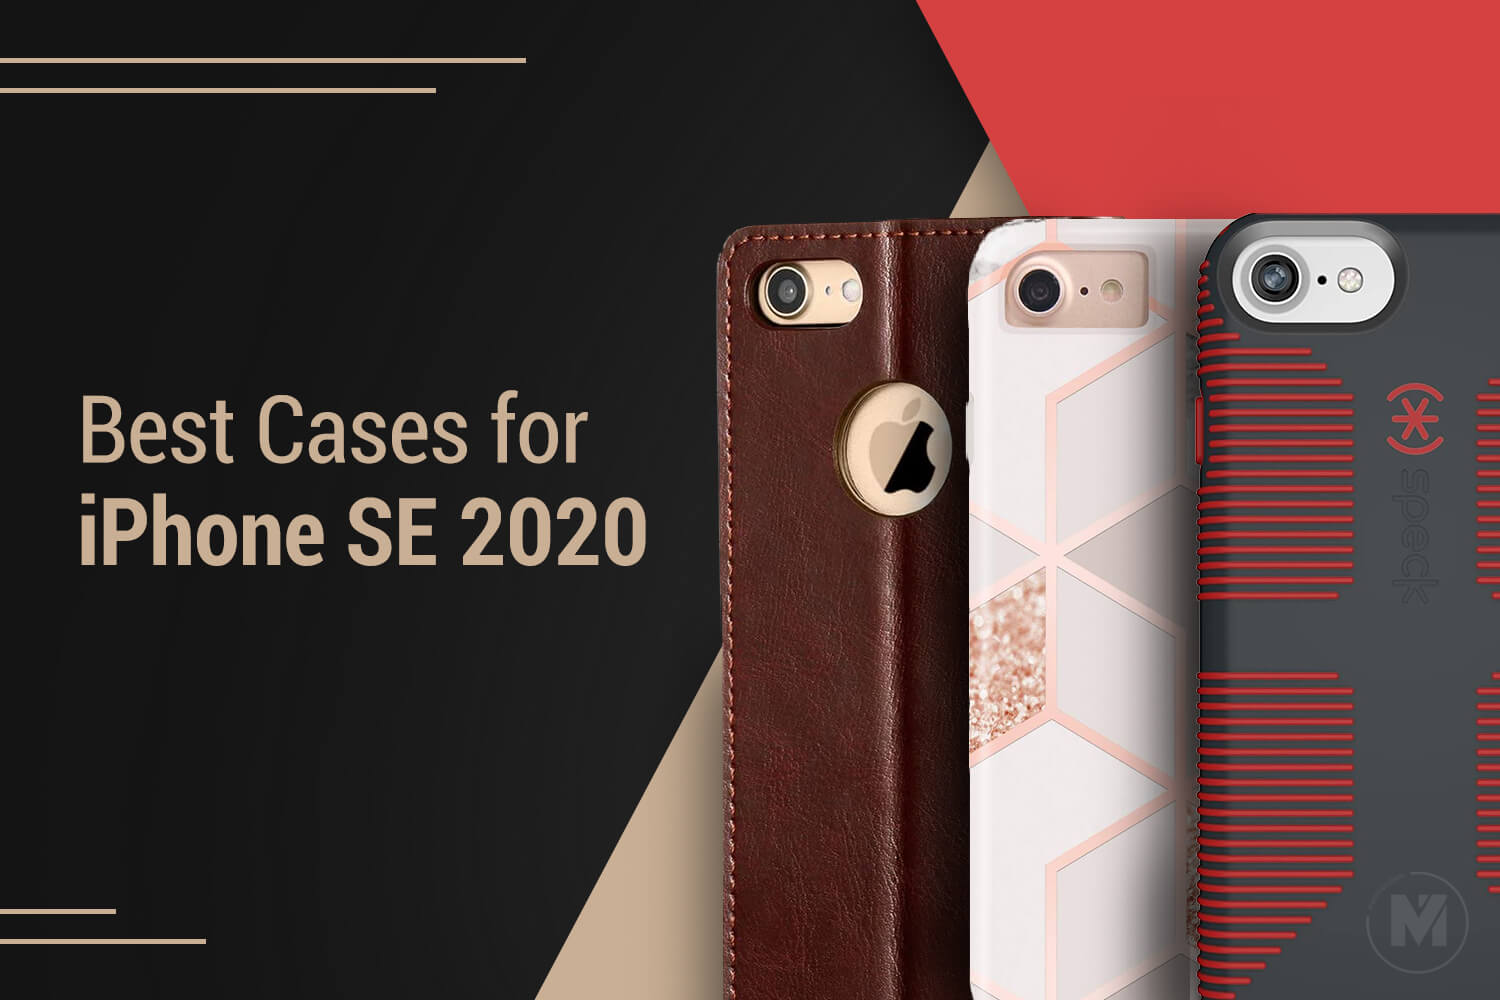 15 Best Cases for iPhone SE 2020